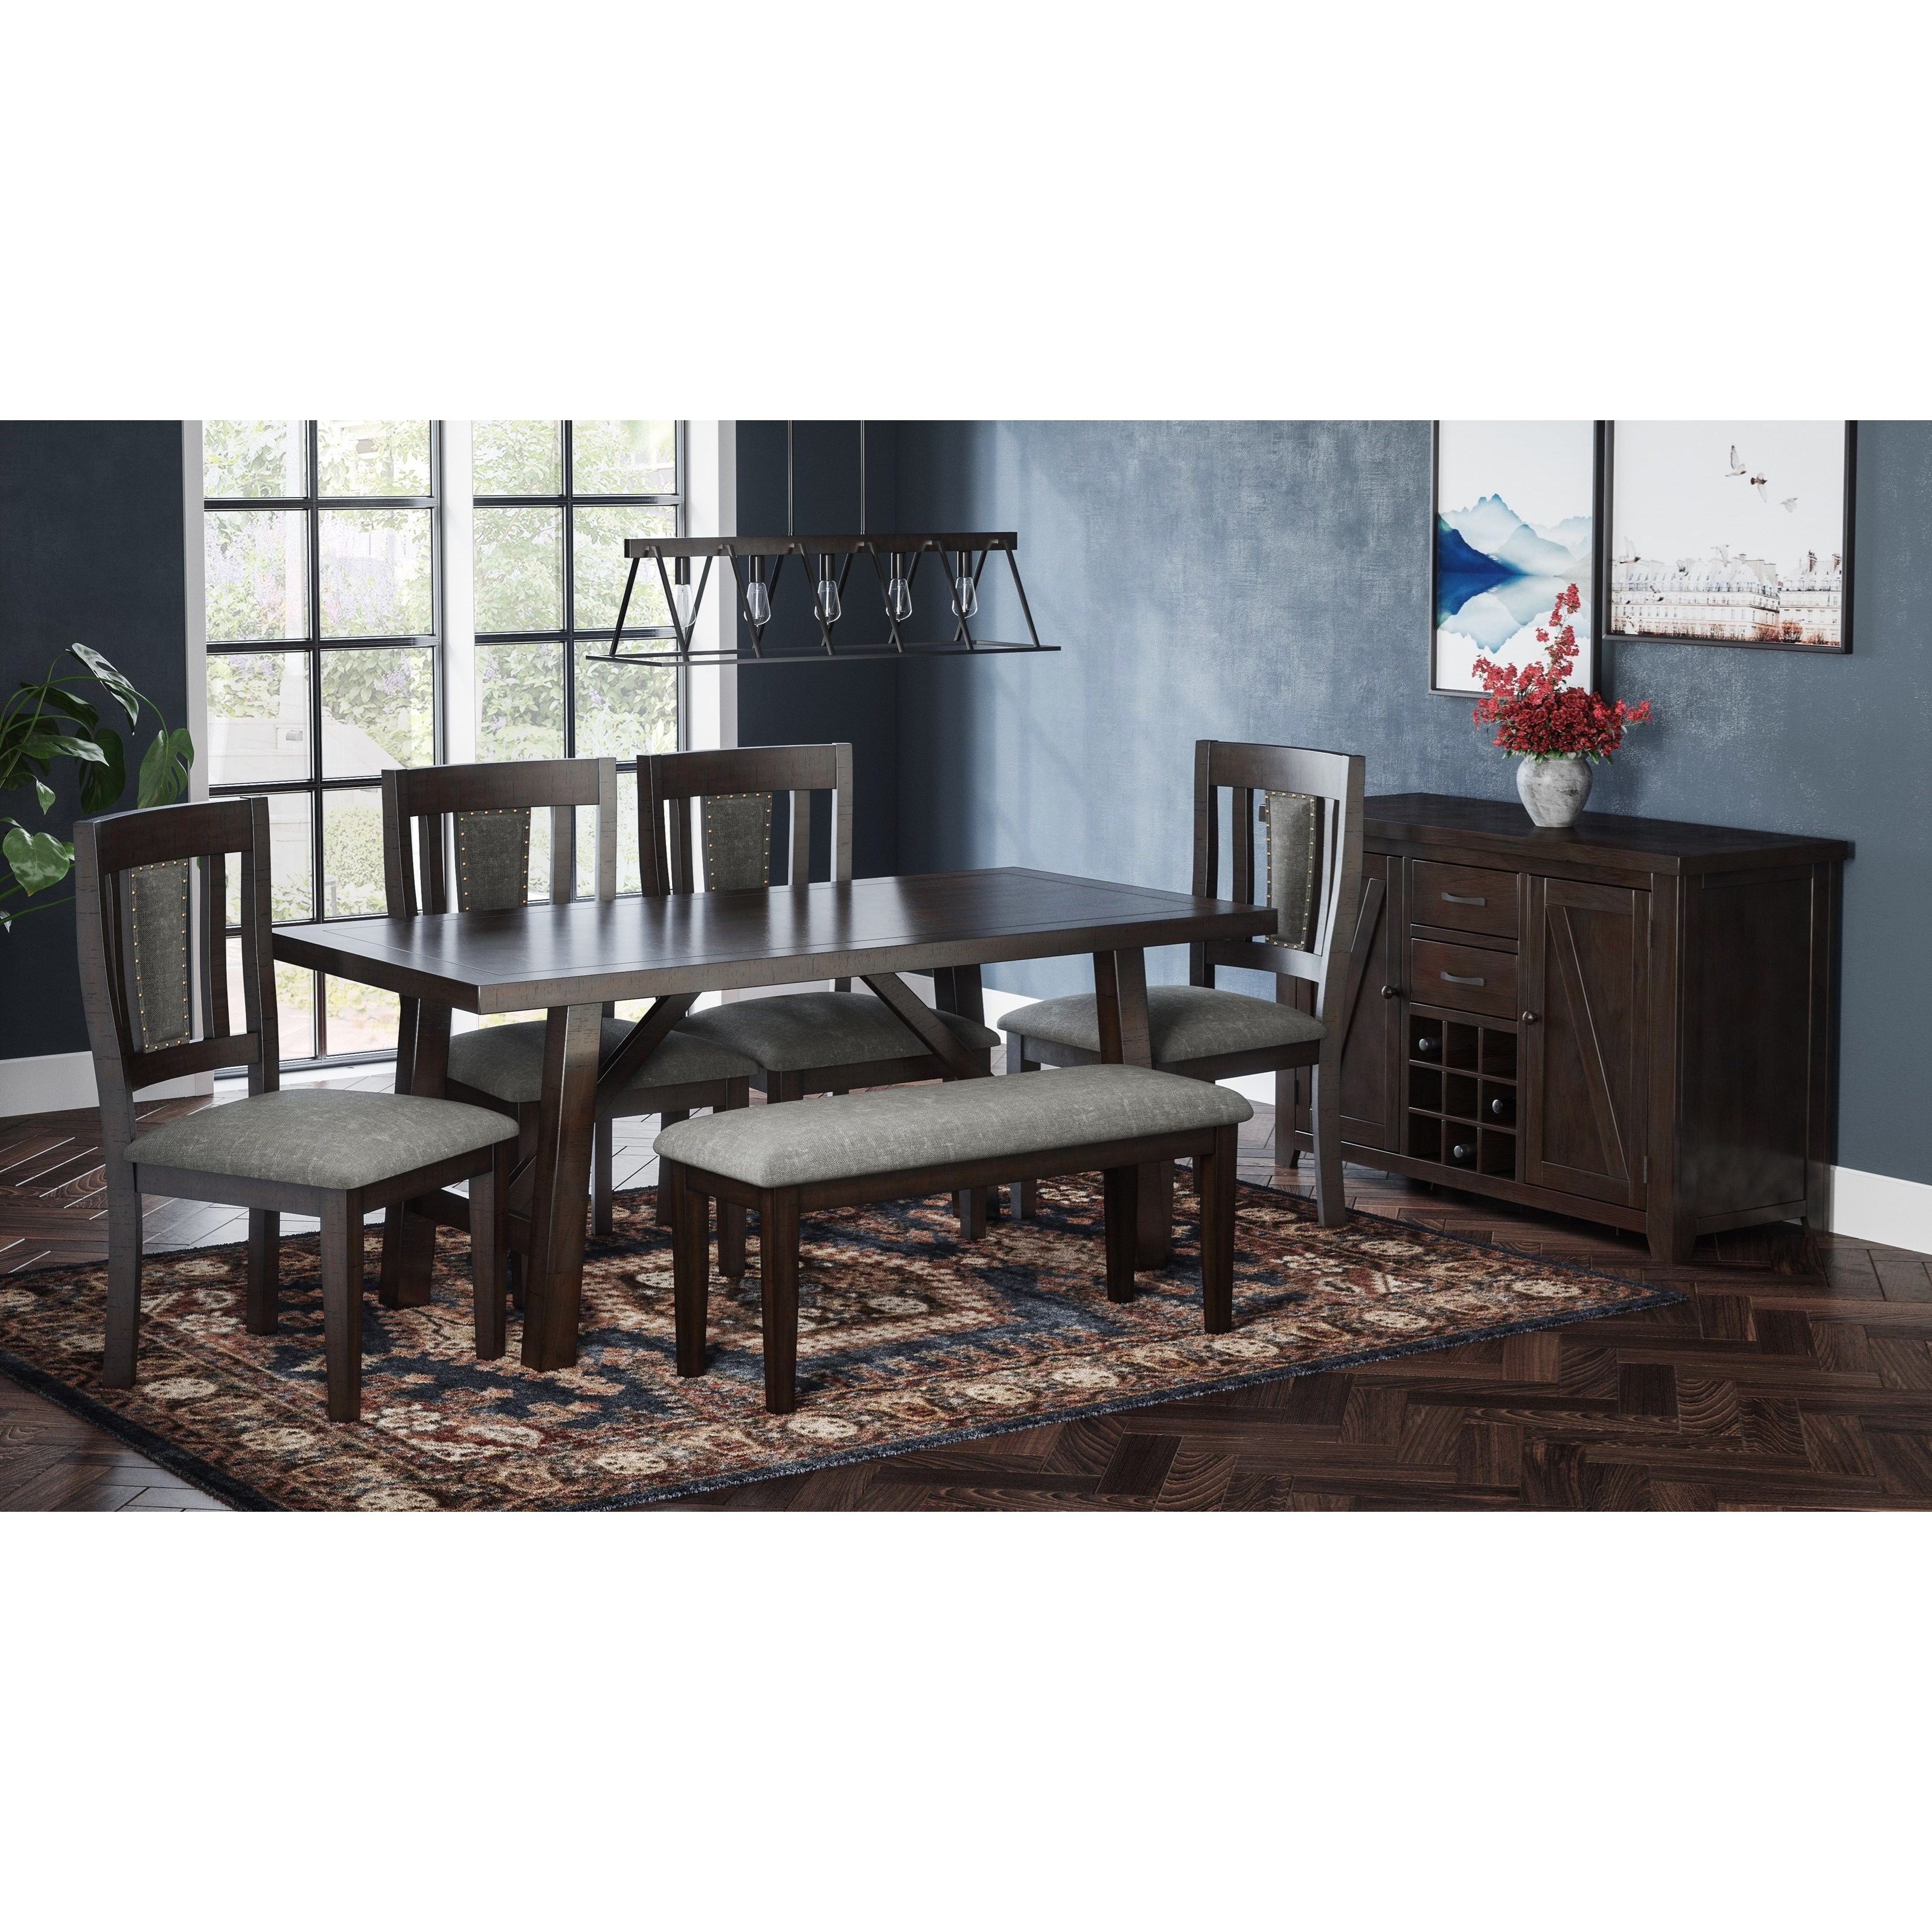 American Rustics Table and Chair Set by Jofran at Lapeer Furniture & Mattress Center